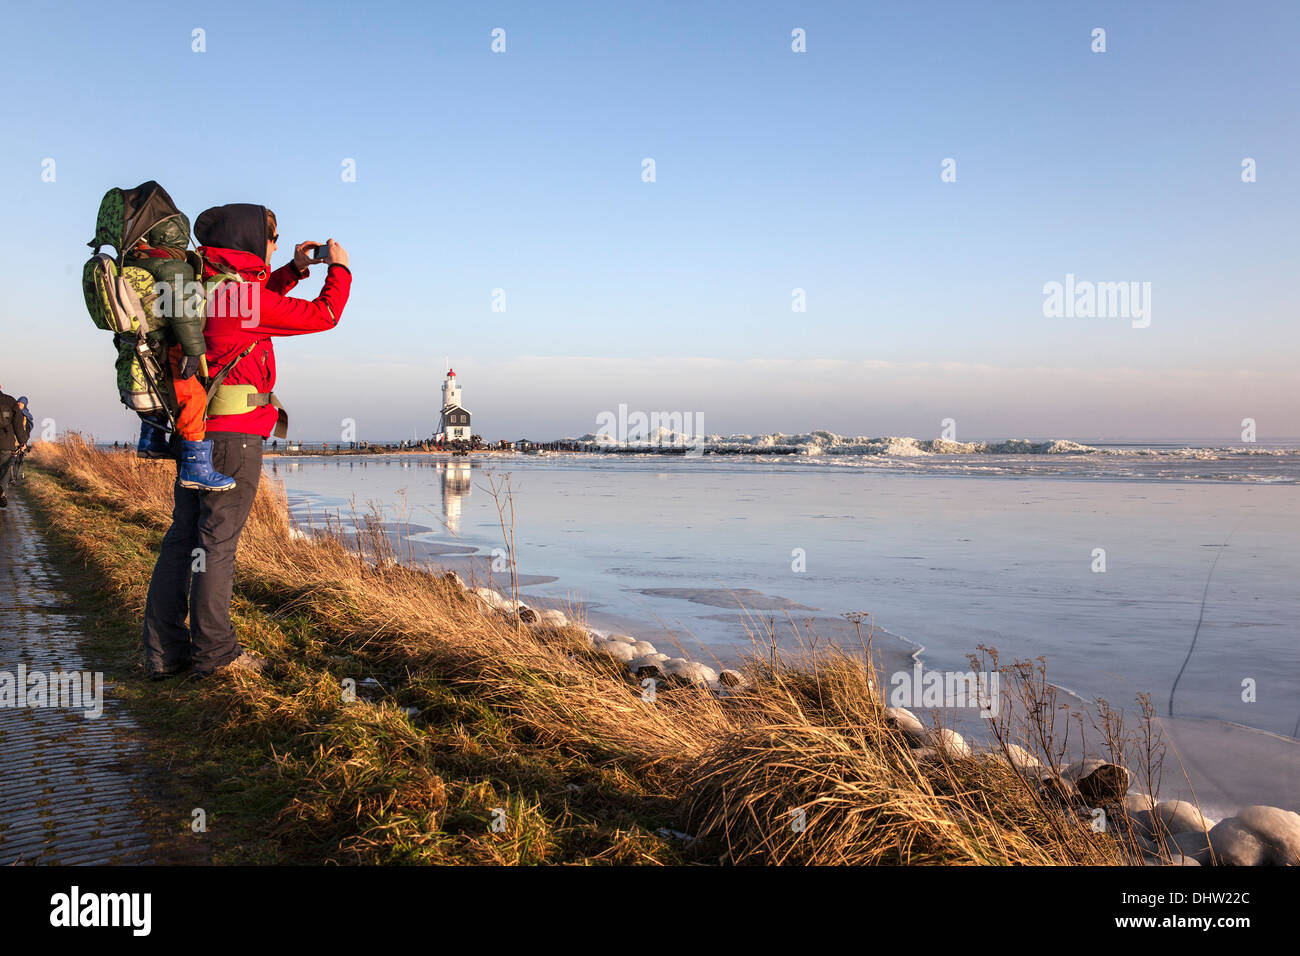 Netherlands, Marken, Ijsselmeer Lake. Winter. Lighthouse called Het Paard. Hiker, woman with child on her back takes picture - Stock Image